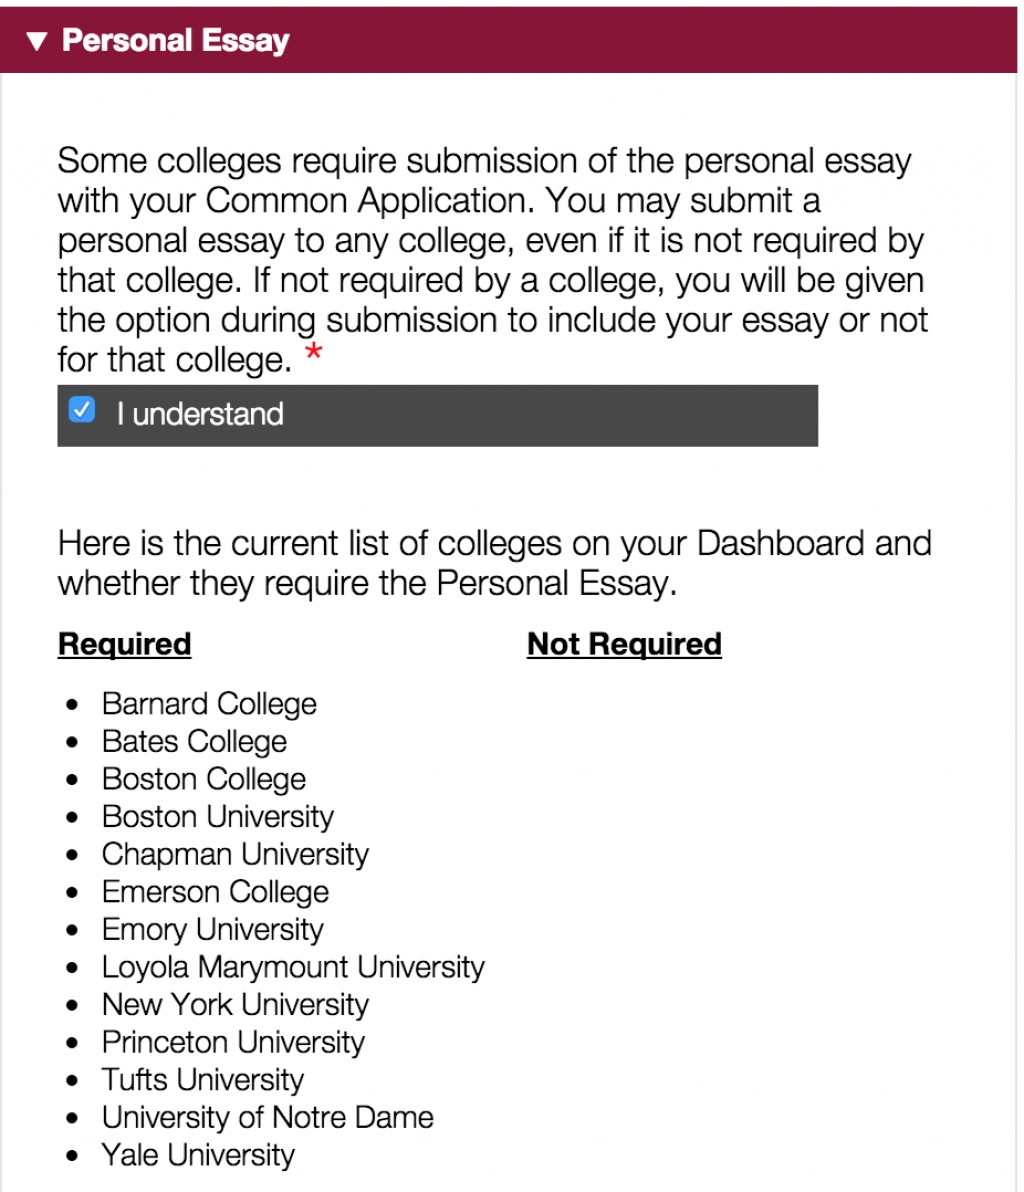 003 Boston University Supplement Essay Screen Shot At Am Sensational 2017 Does Have A Common App Large